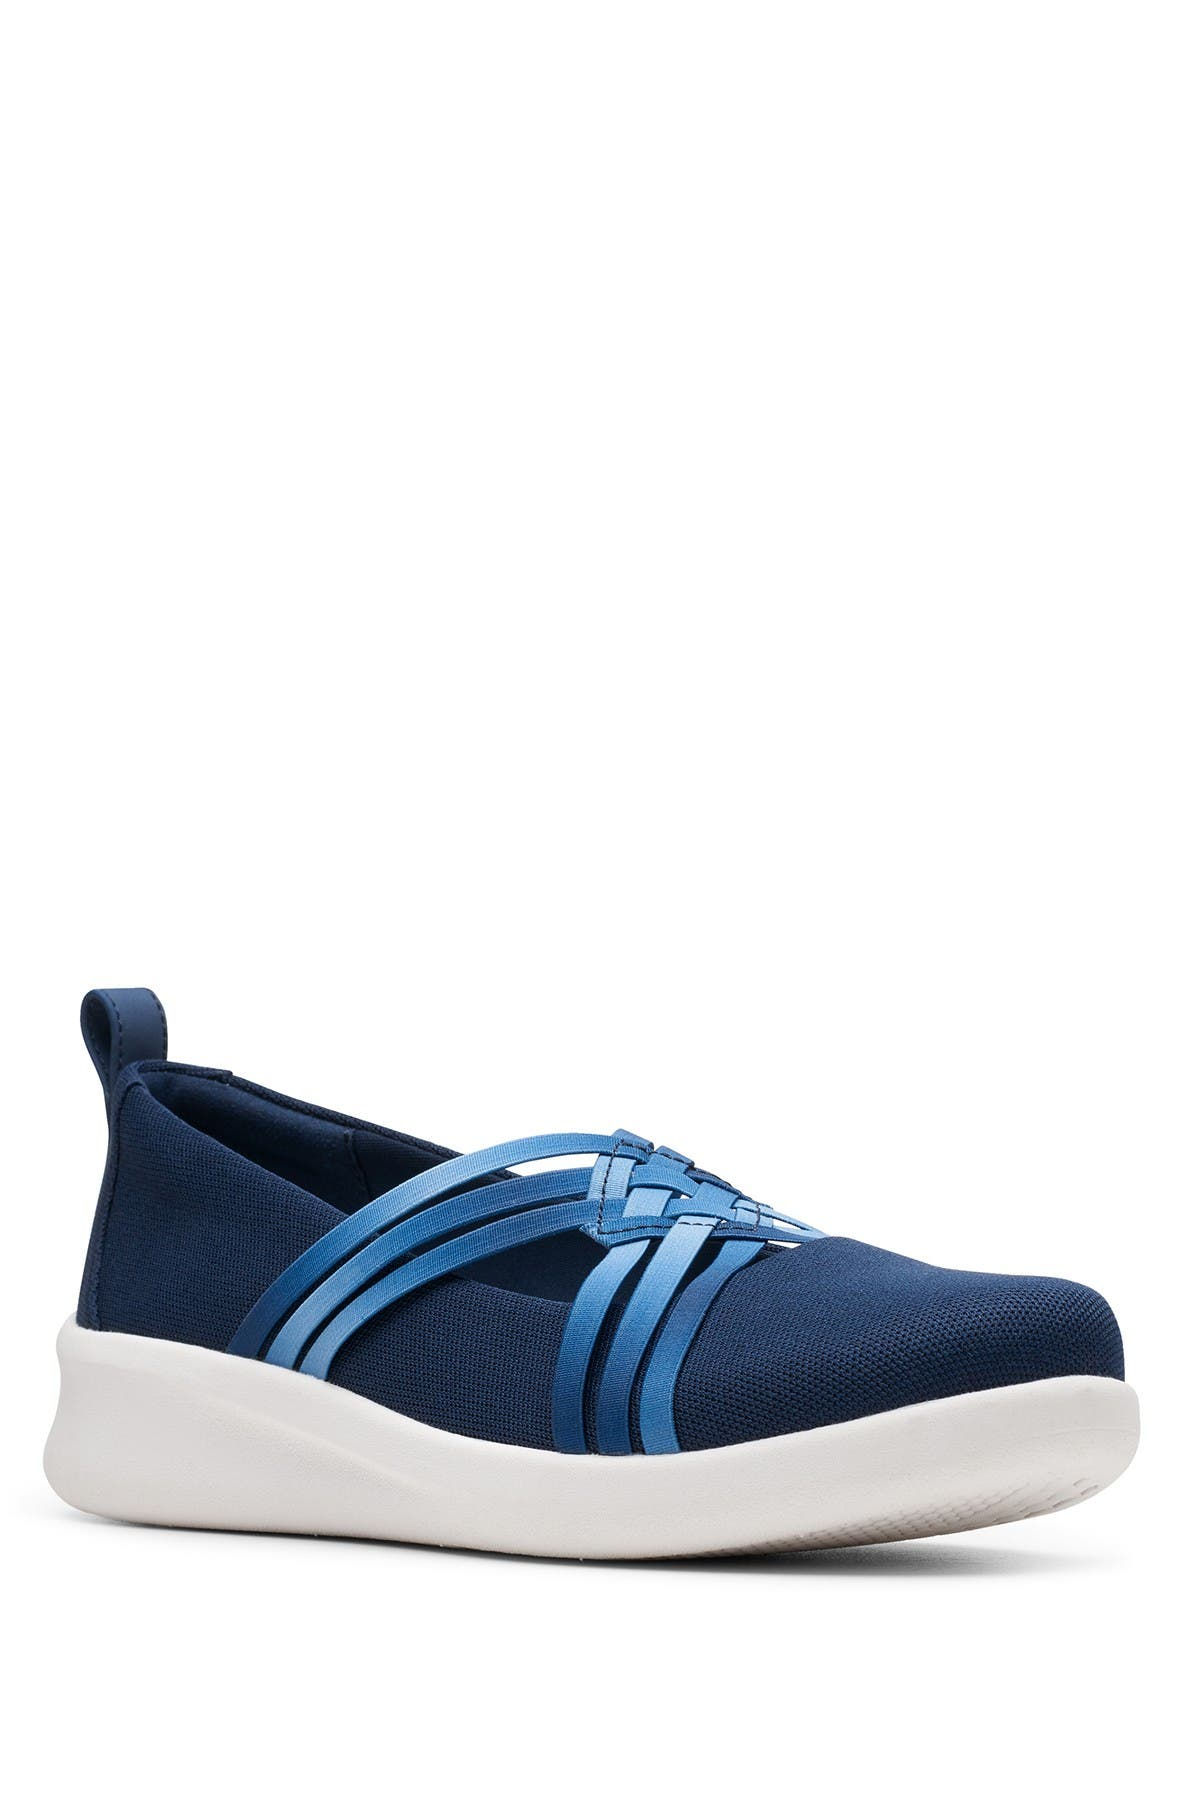 Image of Clarks Sillian 2.0 Cora Flat - Wide Width Available